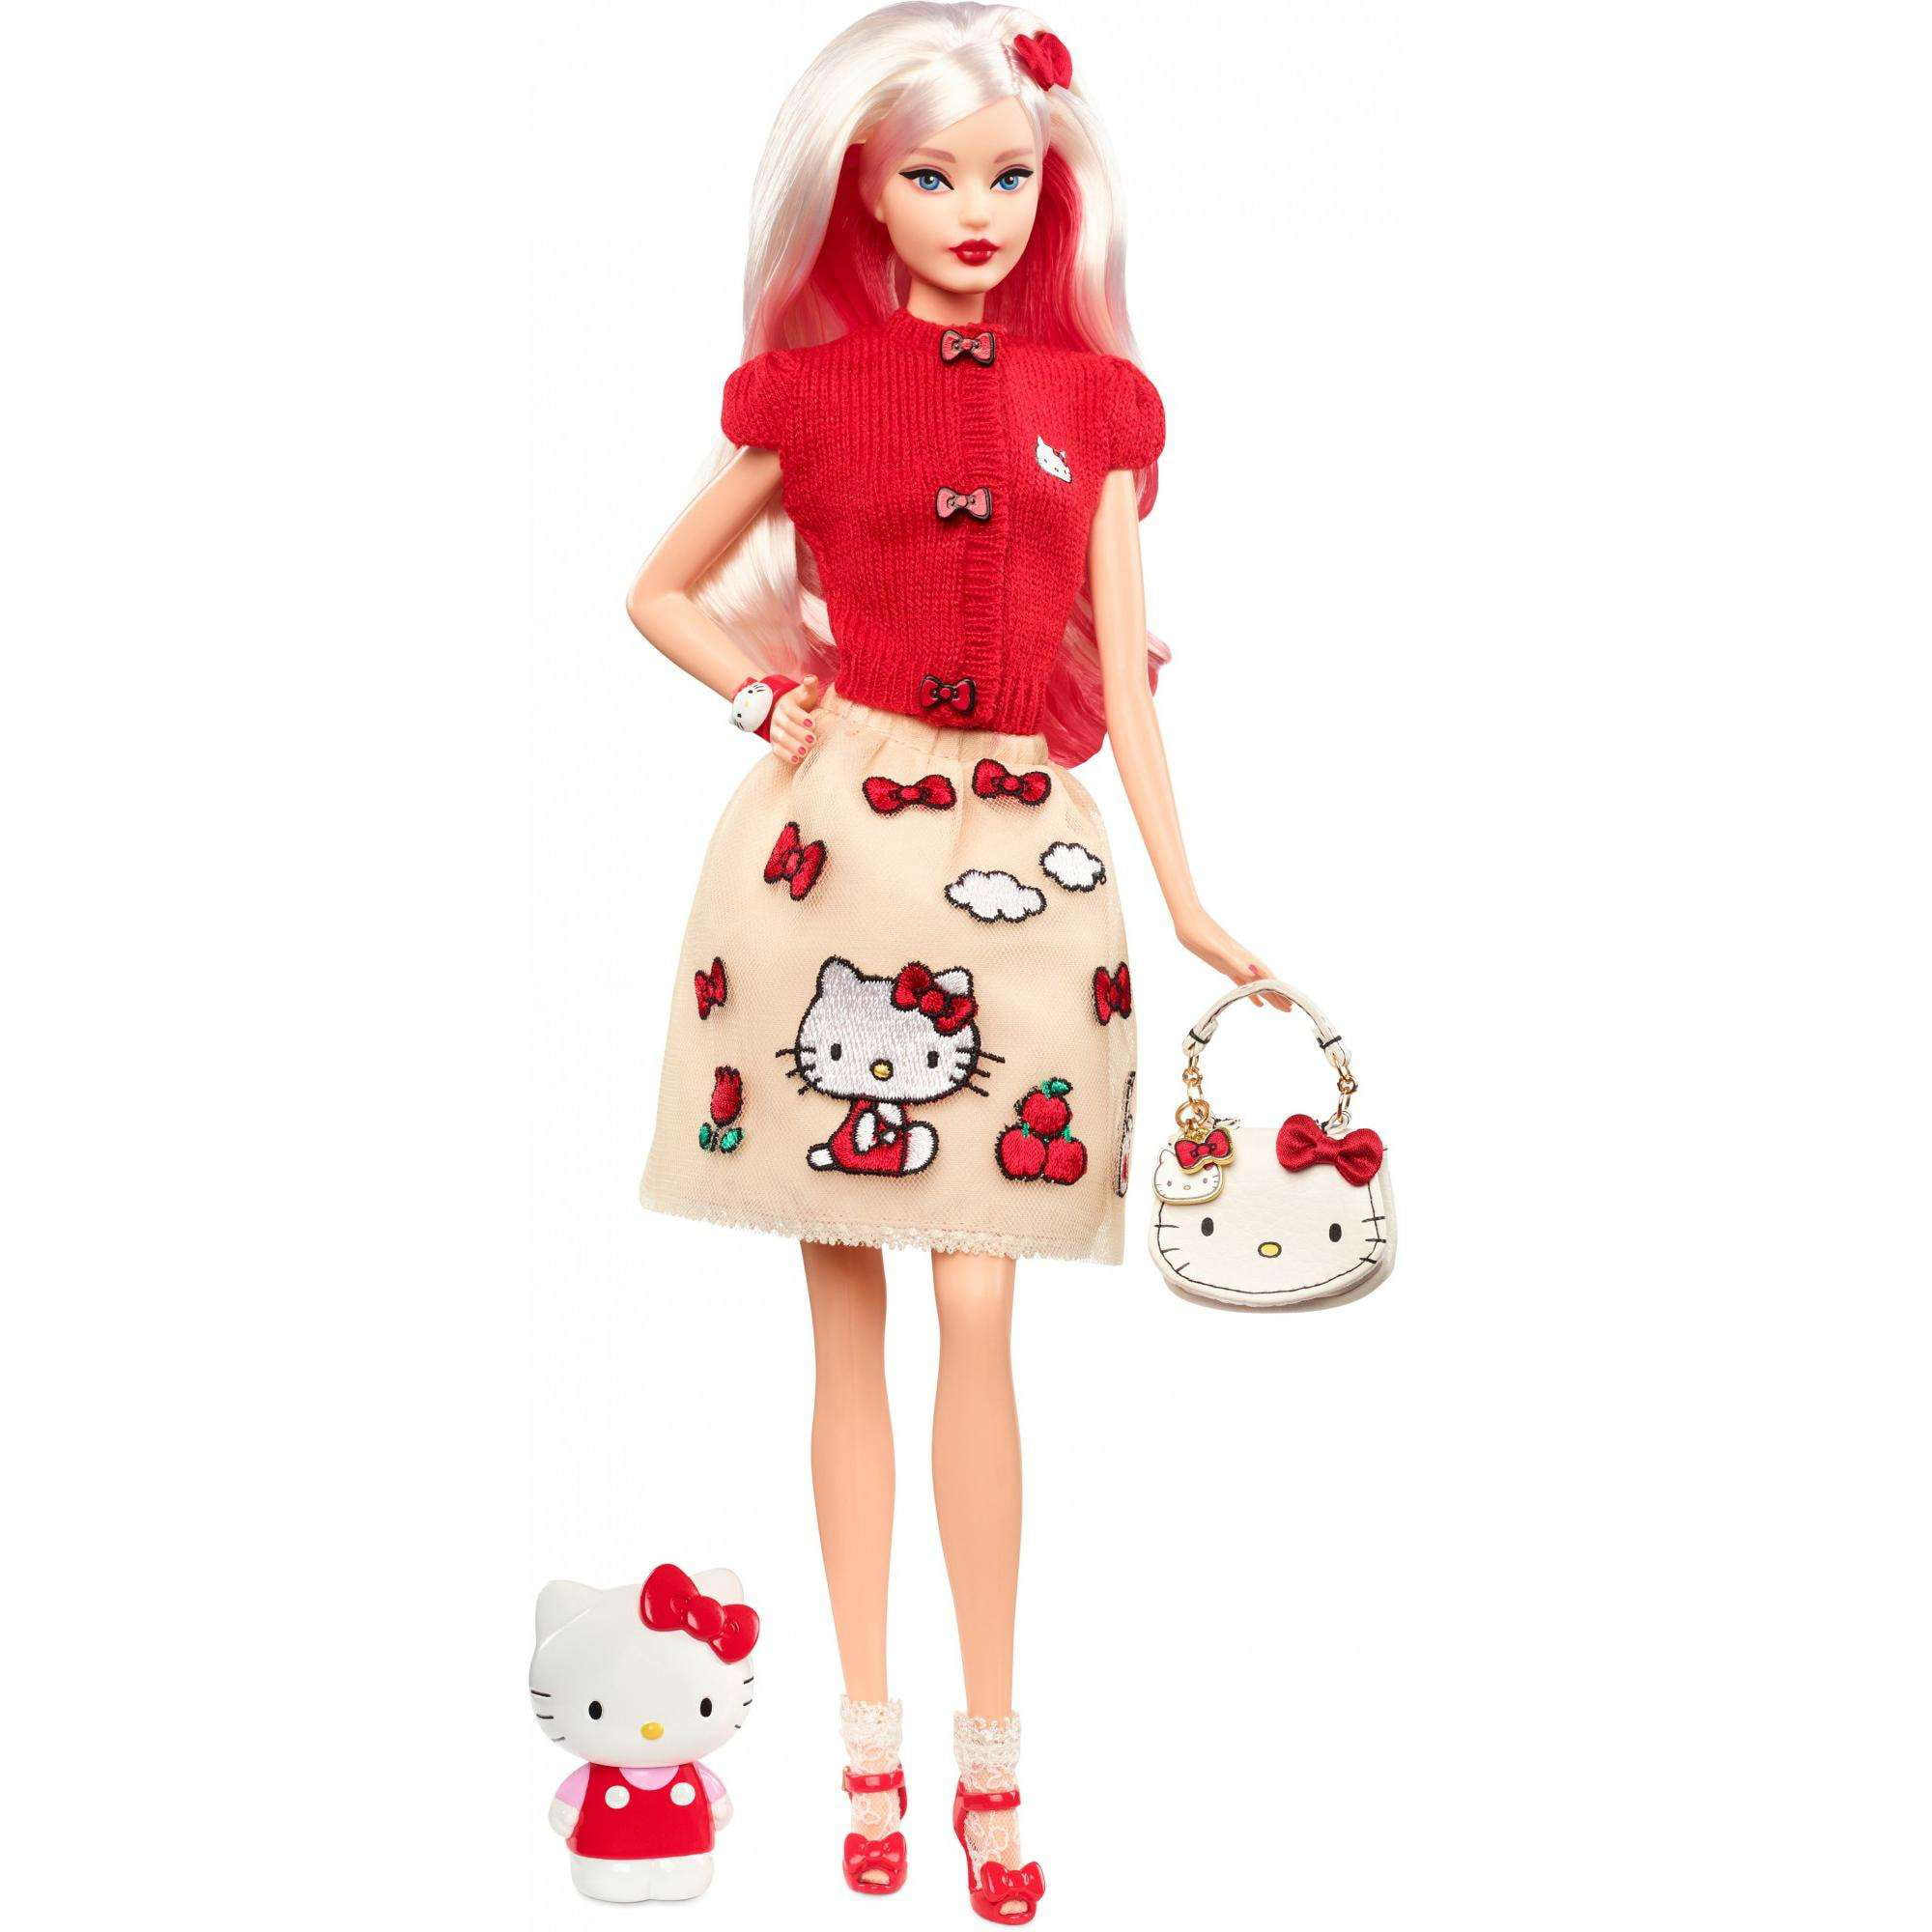 Barbie Hello Kitty Doll by Mattel